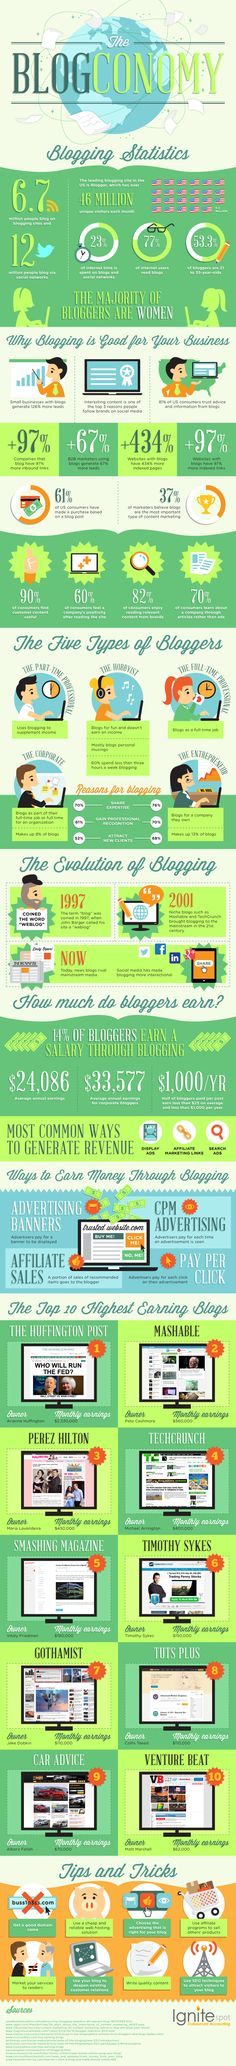 Why Blogging Is Good For Business Infographic